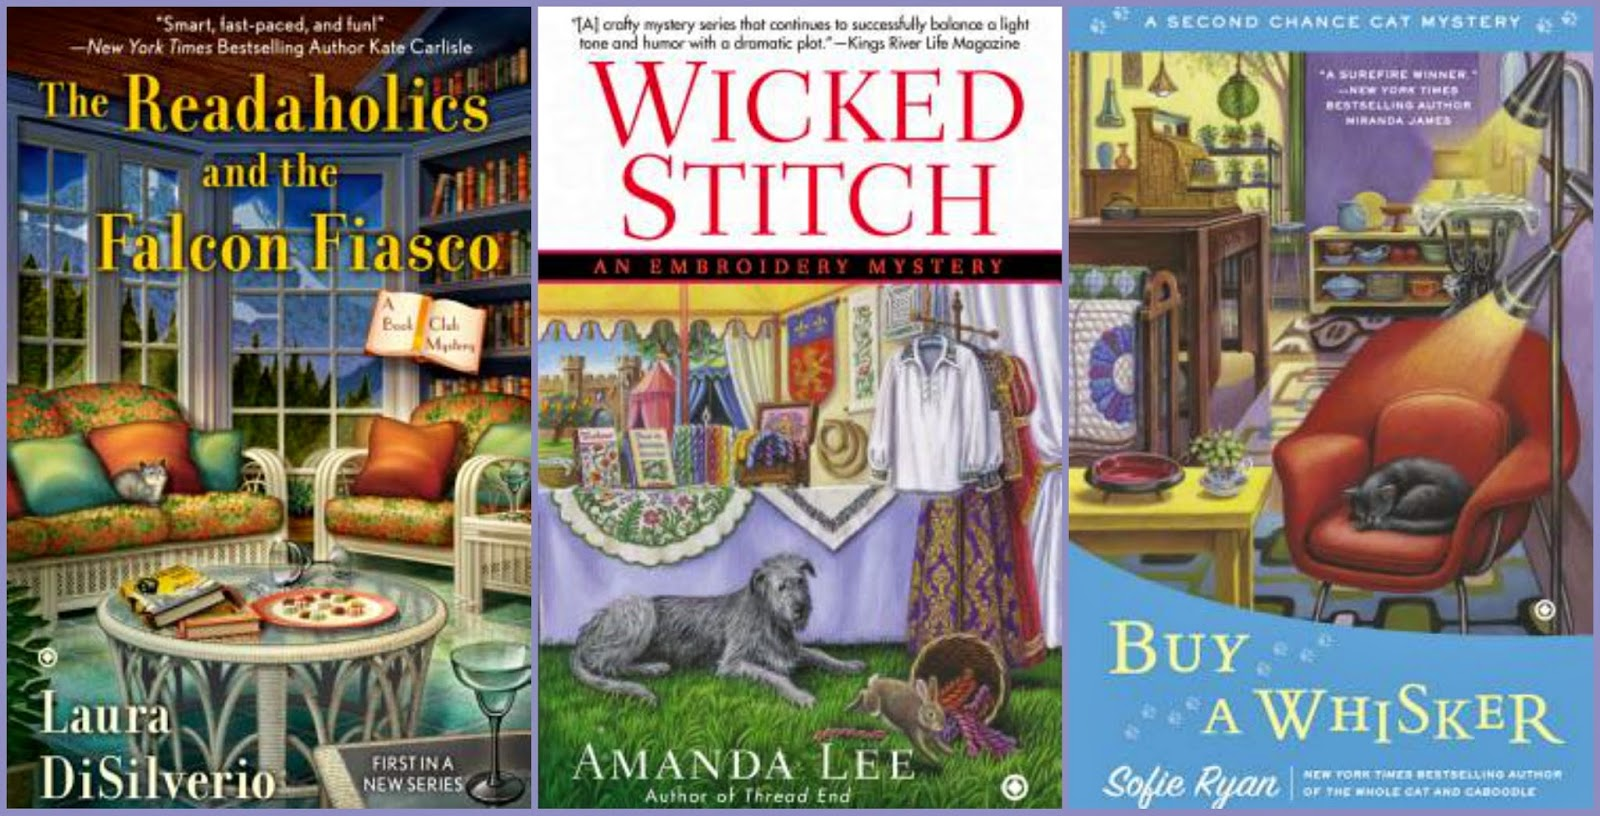 The Readaholics and the Falcon Fiasco by Laura DiSilverio, Wicked Stitch by Amanda Lee, Buy a Whisker by Sofie Ryan